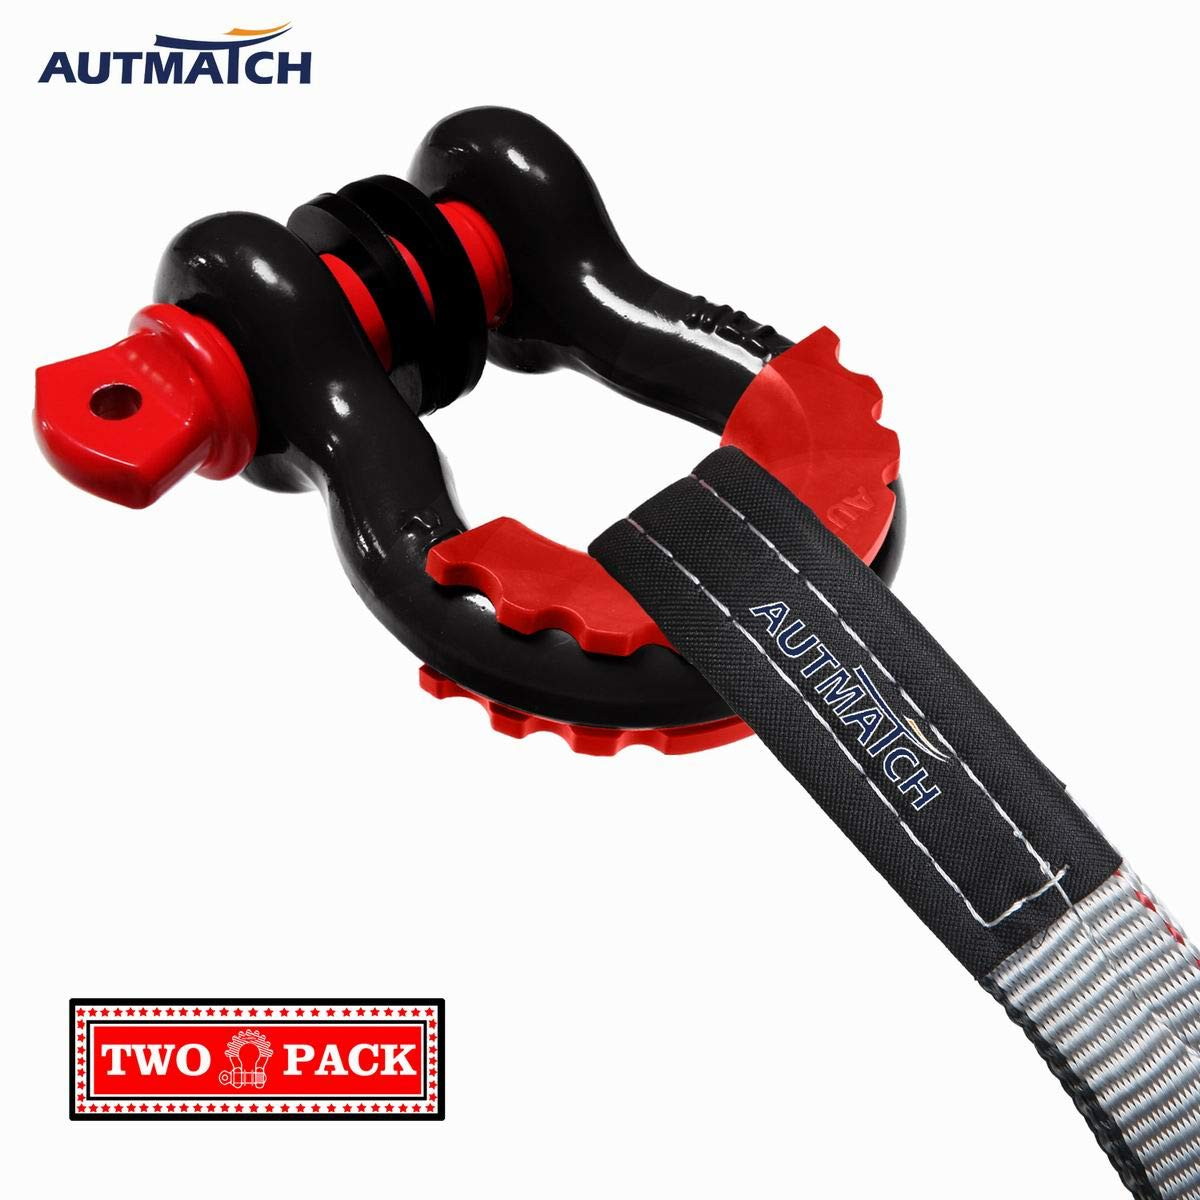 2 Pack 41,887Ib Break Strength with 7//8 Screw Pin and Shackle Isolator /& Washers Kit for Tow Strap Winch Off Road Towing Accessory Jeep Vehicle Recovery Red AUTMATCH Shackles 3//4 D Ring Shackle